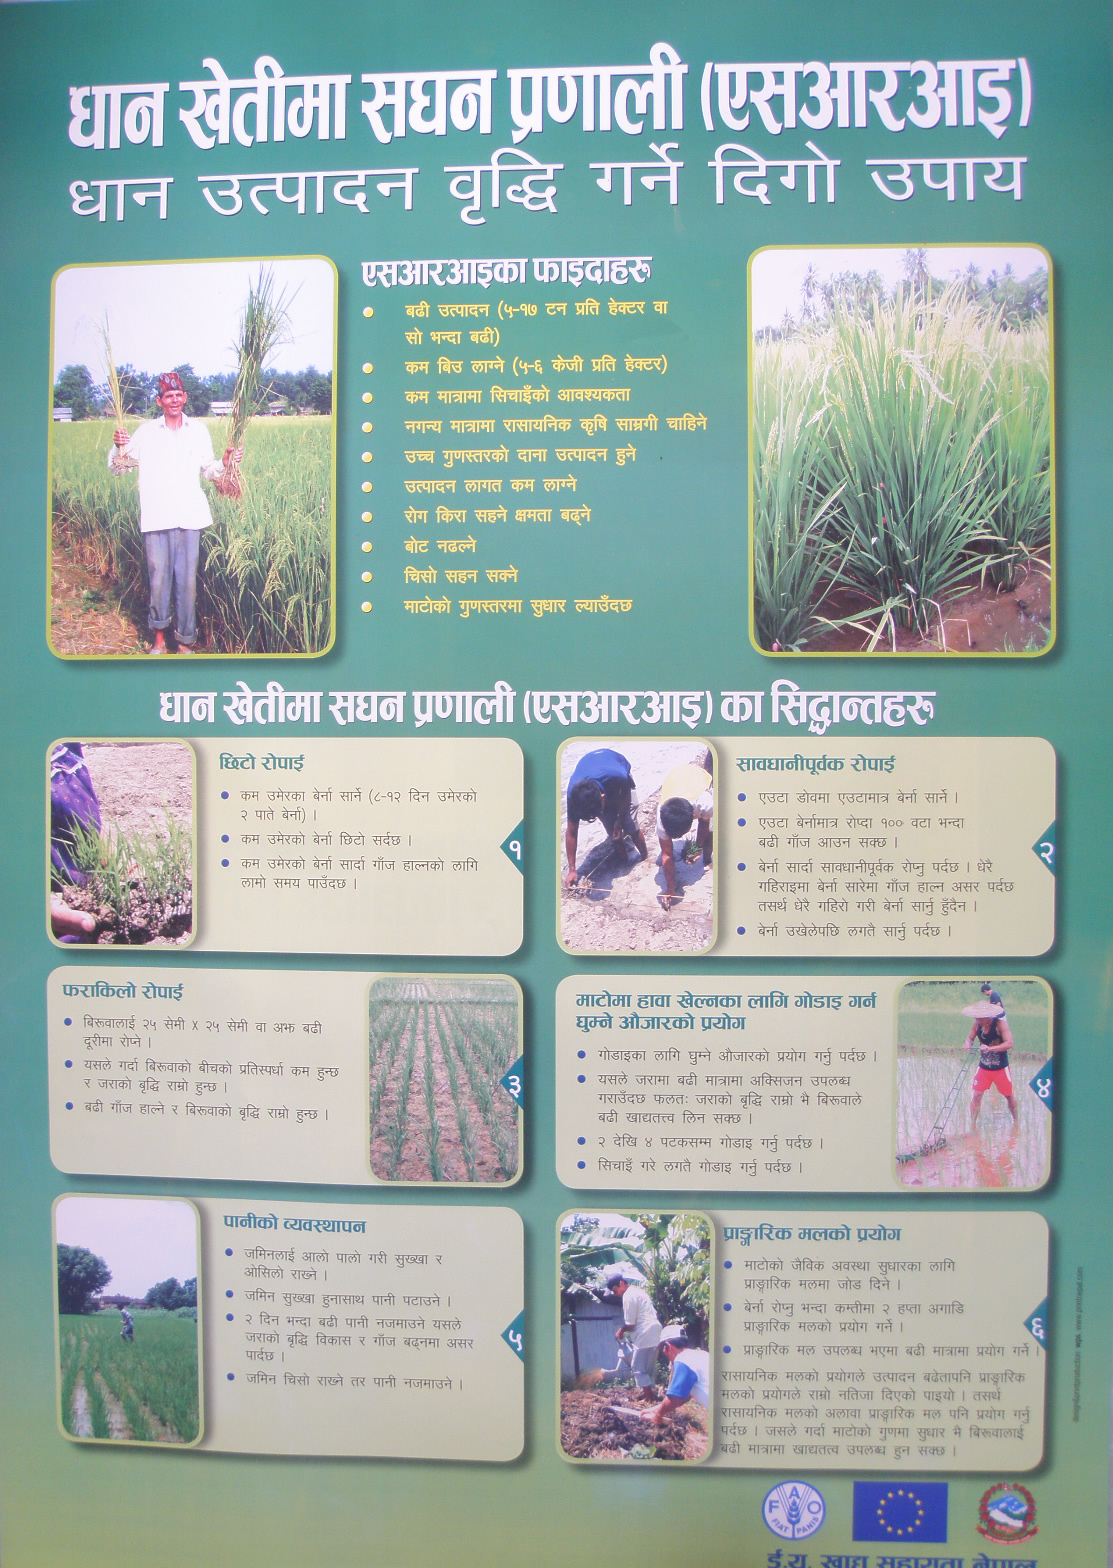 thesis on organic farming in nepal Our farm is an exemplary permaculture farm it is located in patalekhet, approximately 42 km east from kathmandu organic marketing thesis research following are major permacultural aspects that can be learnt in our farm: house designing.